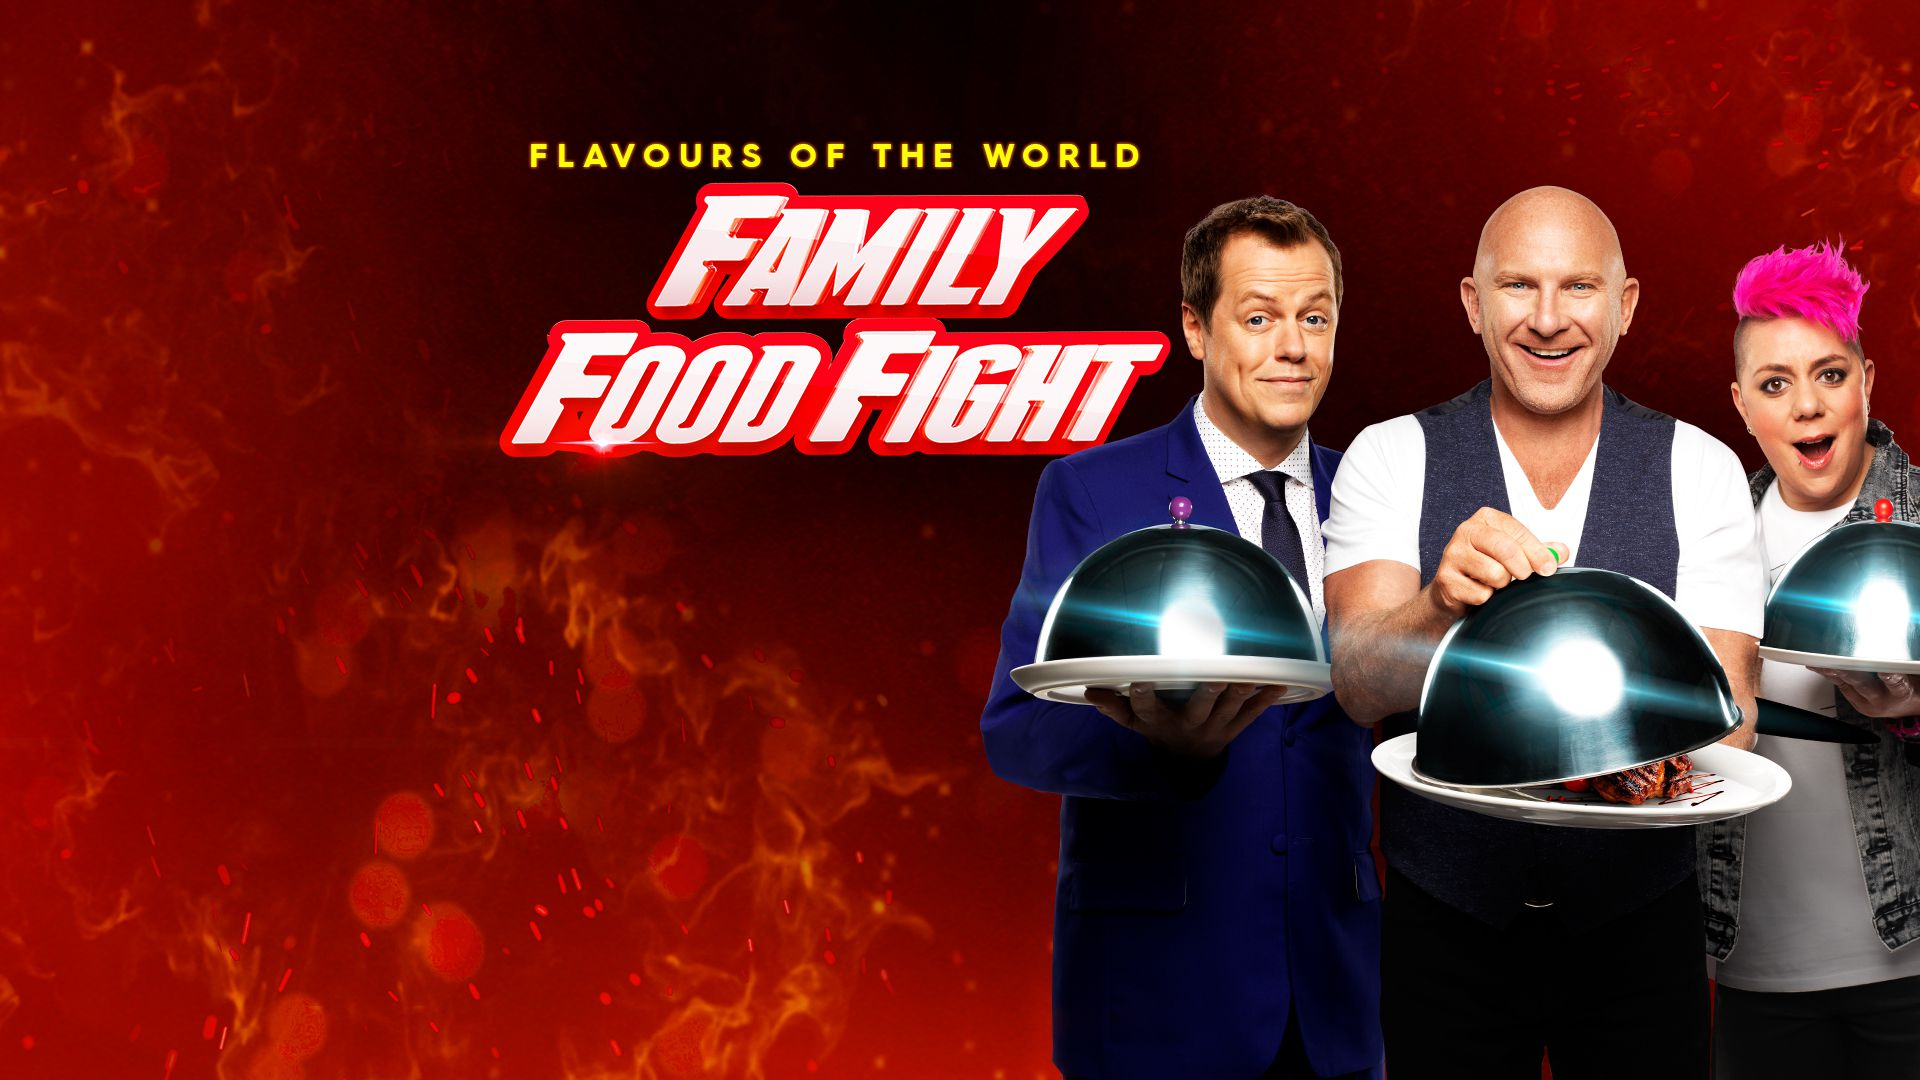 Watch Family Food Fight Season 2 Catch Up Tv